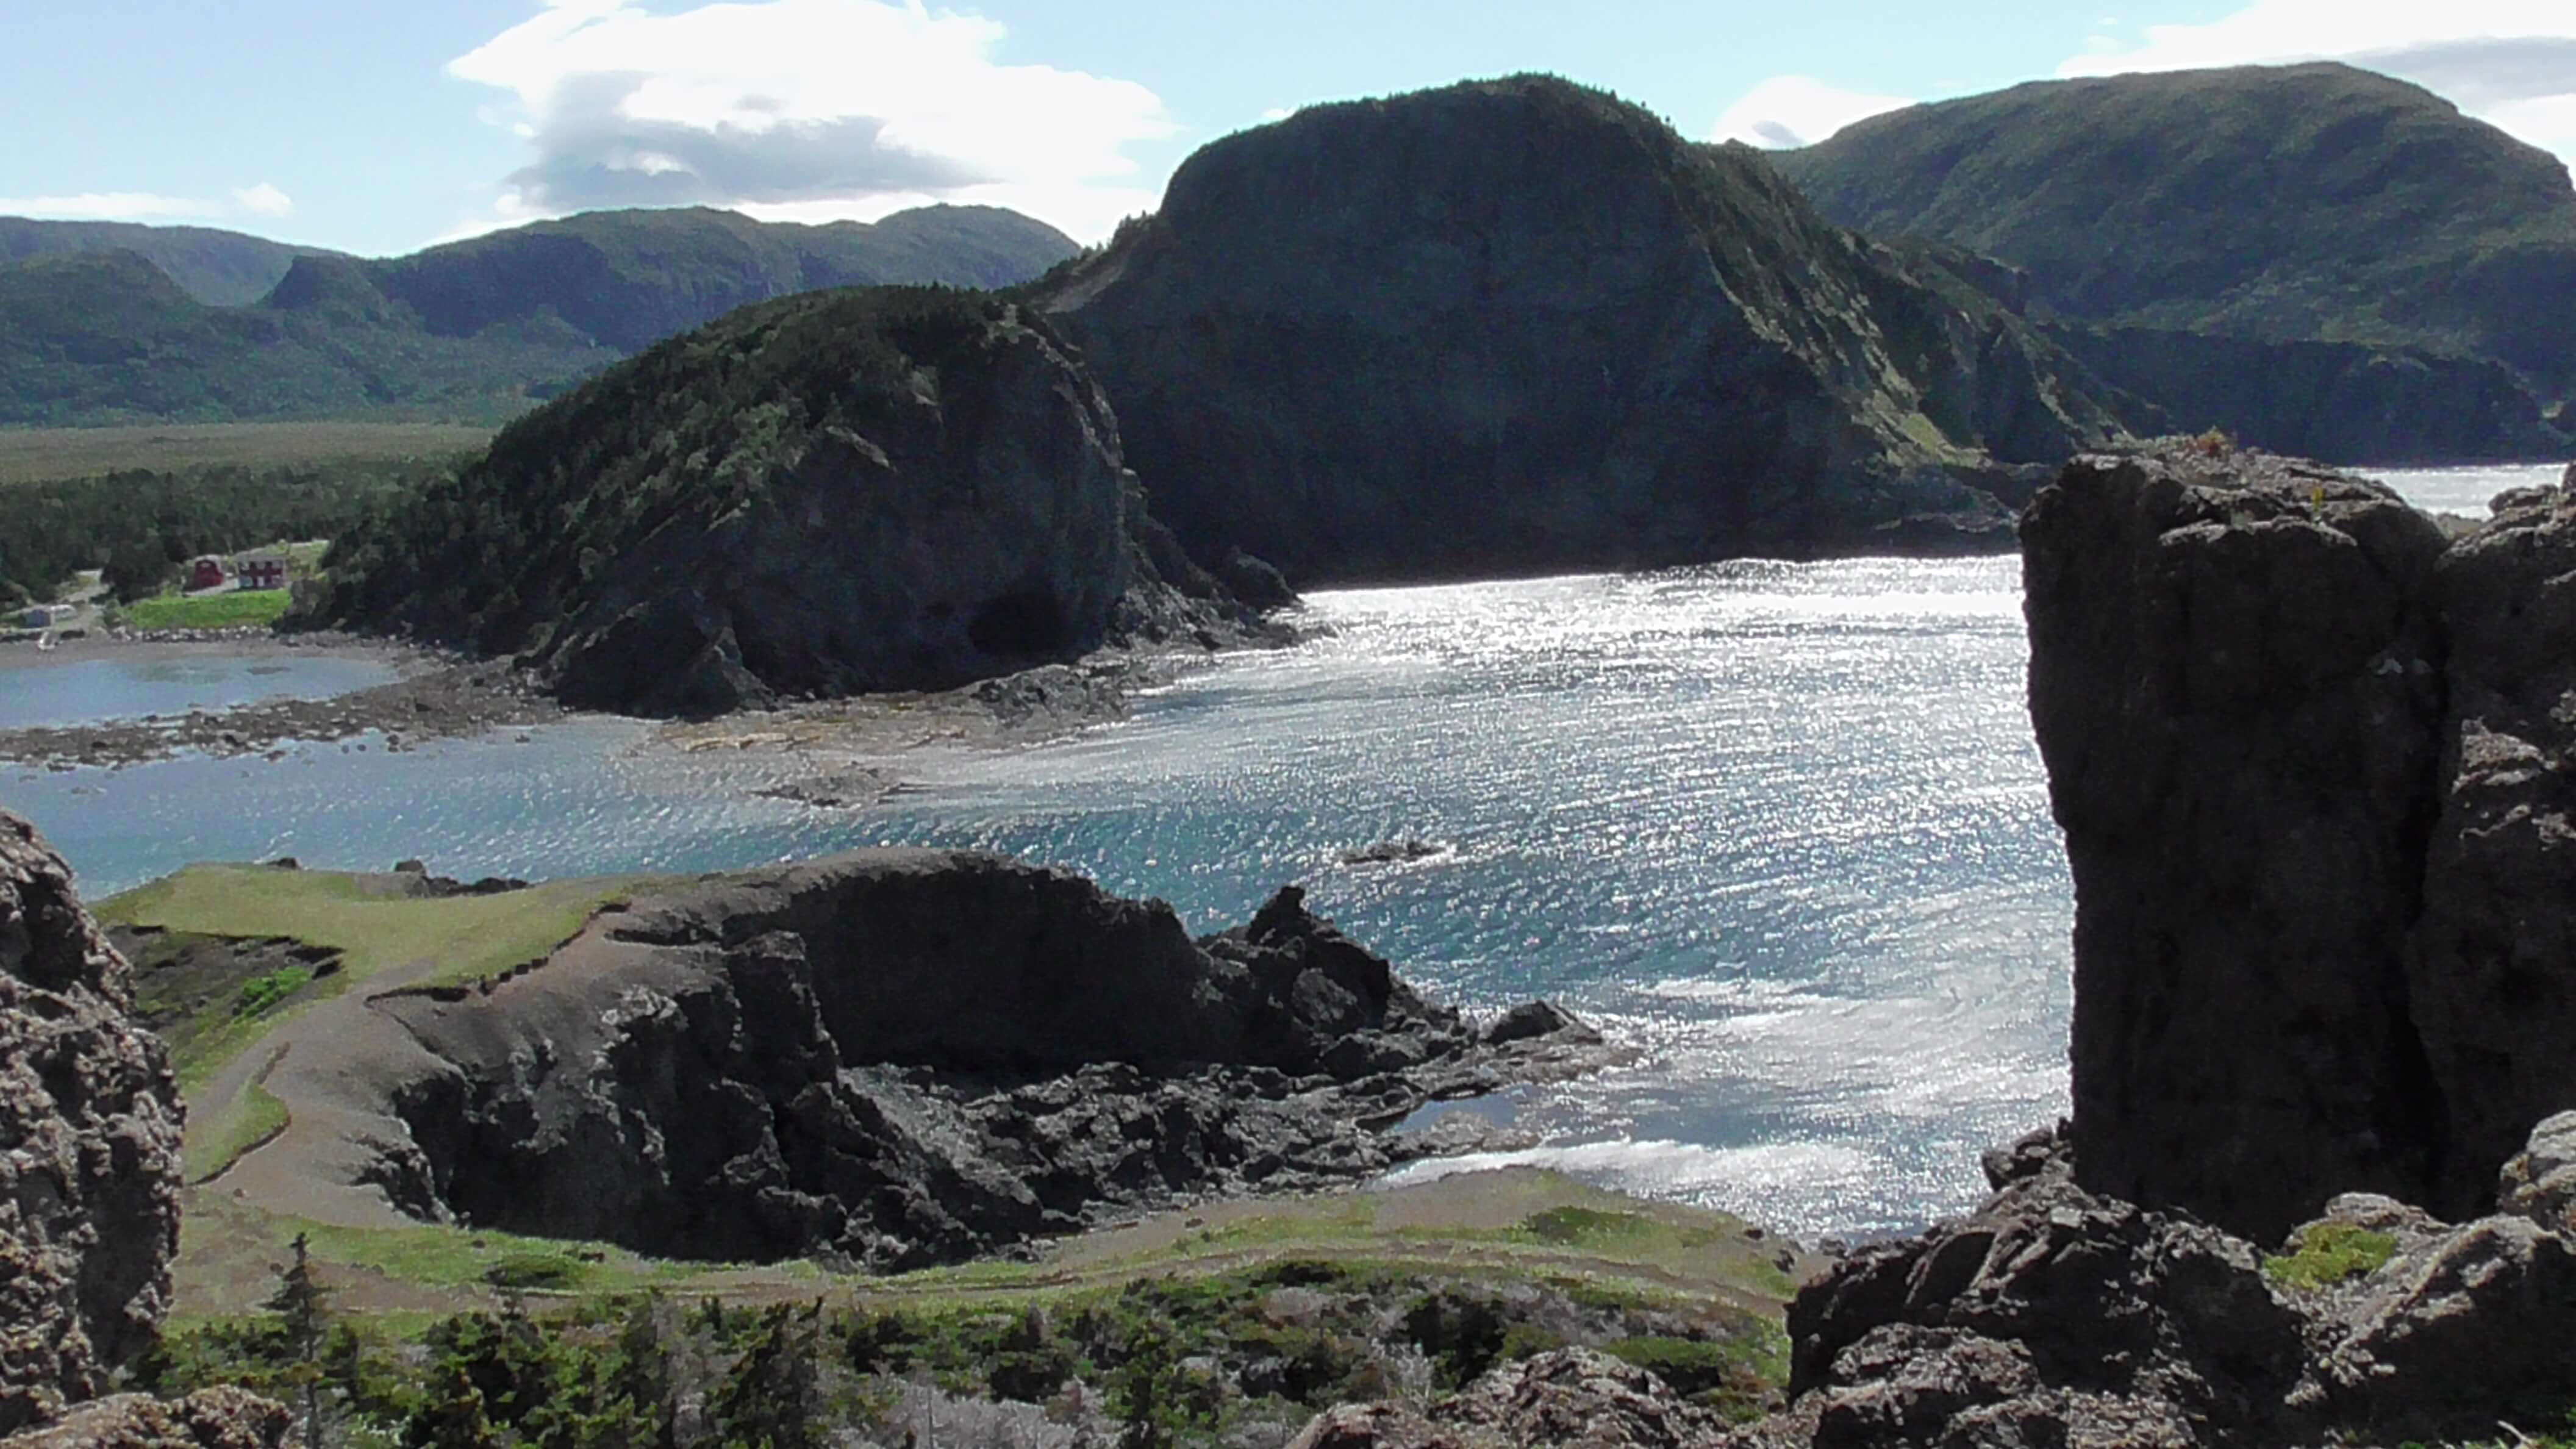 Entrance to Bottle Cove